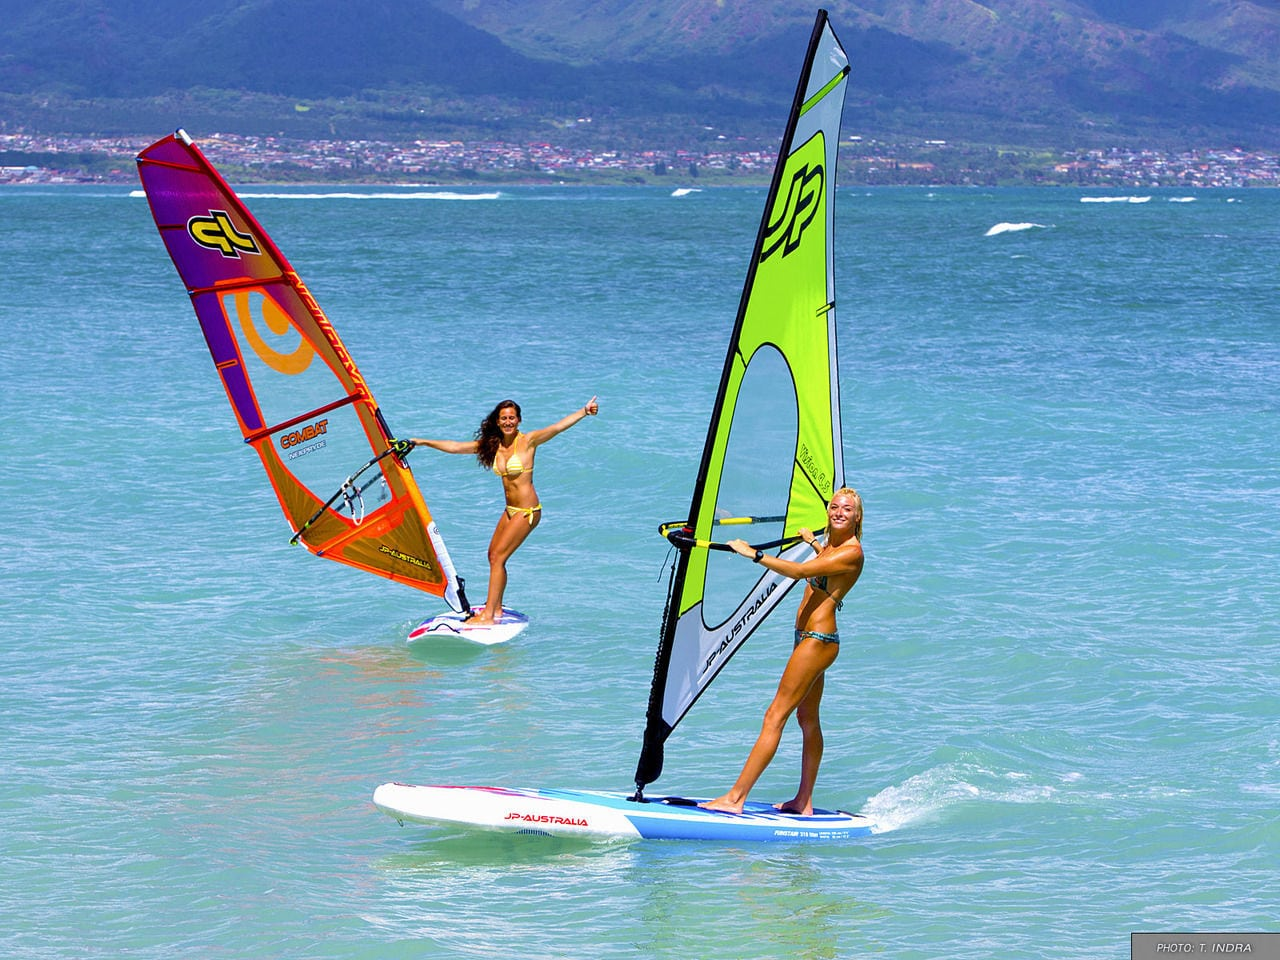 Miami Windsurfing